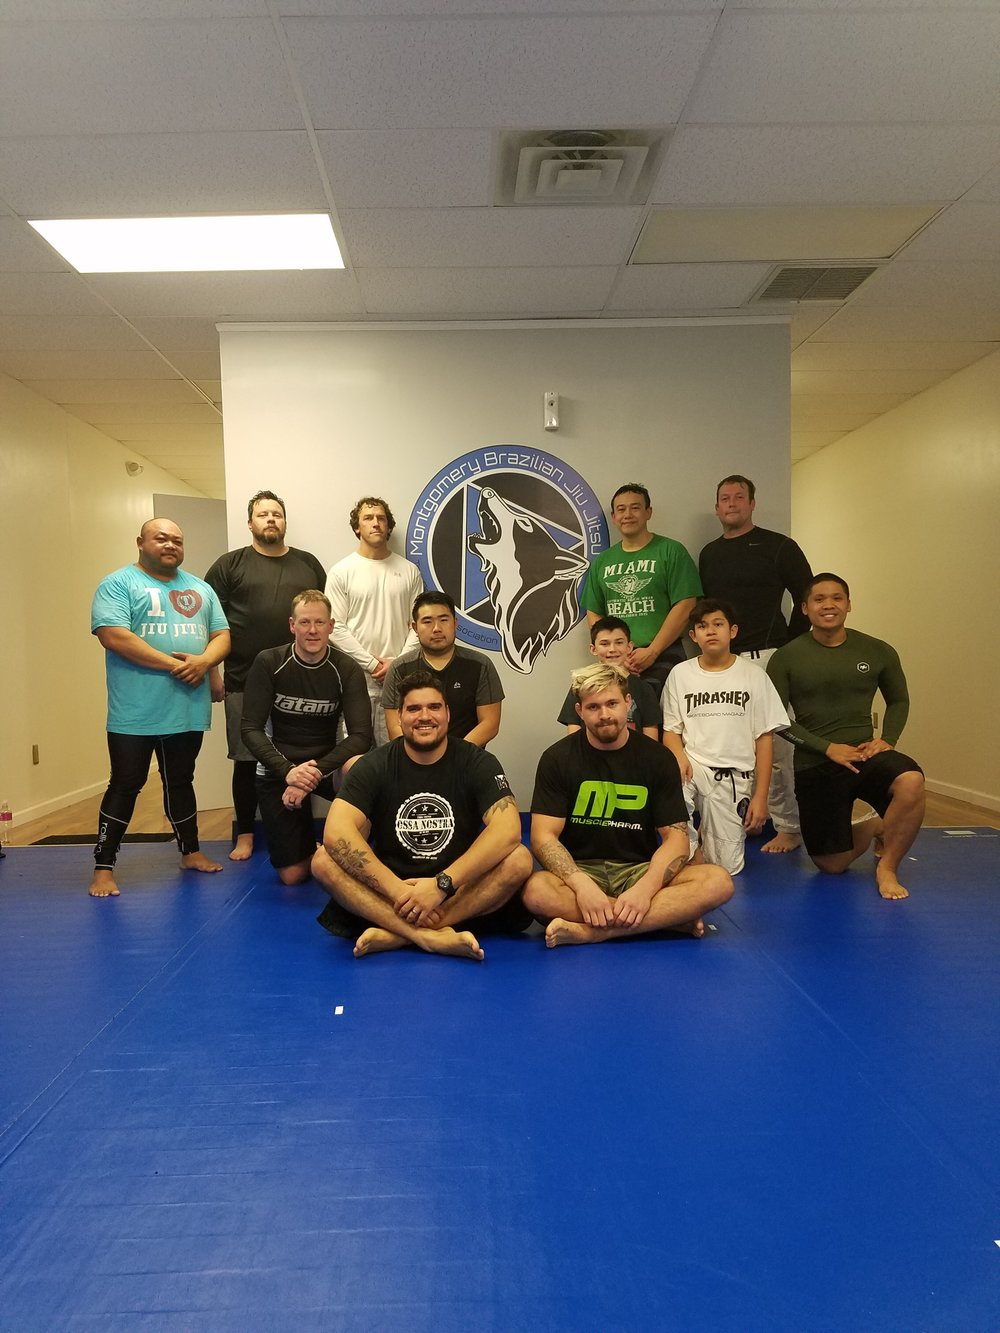 Seminar with teammate and ADCC Champion Gordon Ryan.